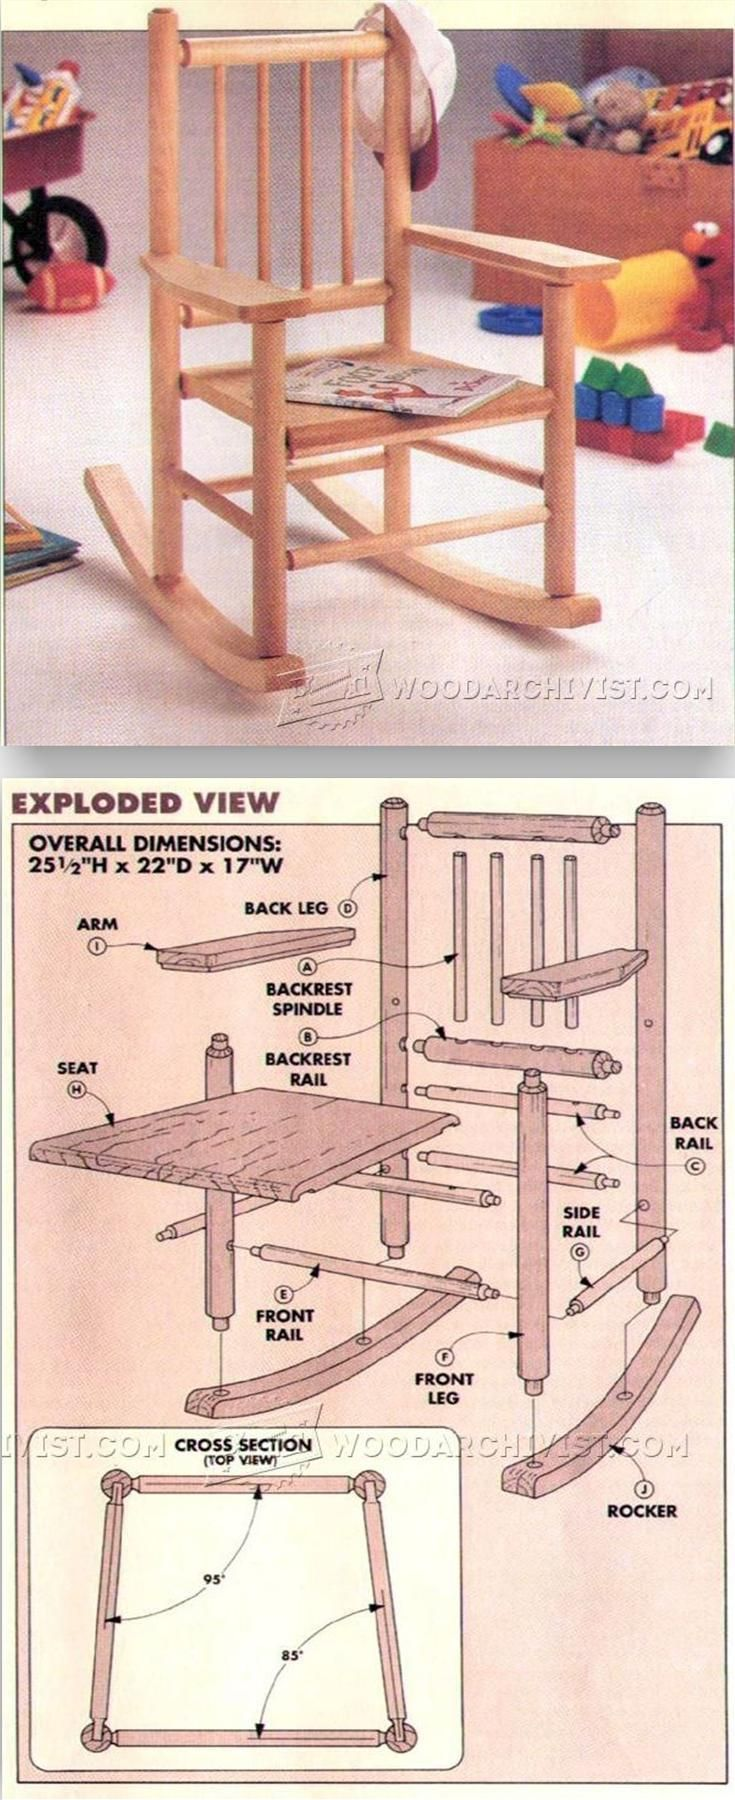 How to build a wingback chair my woodworking plans - Diy Kids Furniture Childs Rocking Chair Plans Children S Furniture Plans And Projects Woodarchivist Com